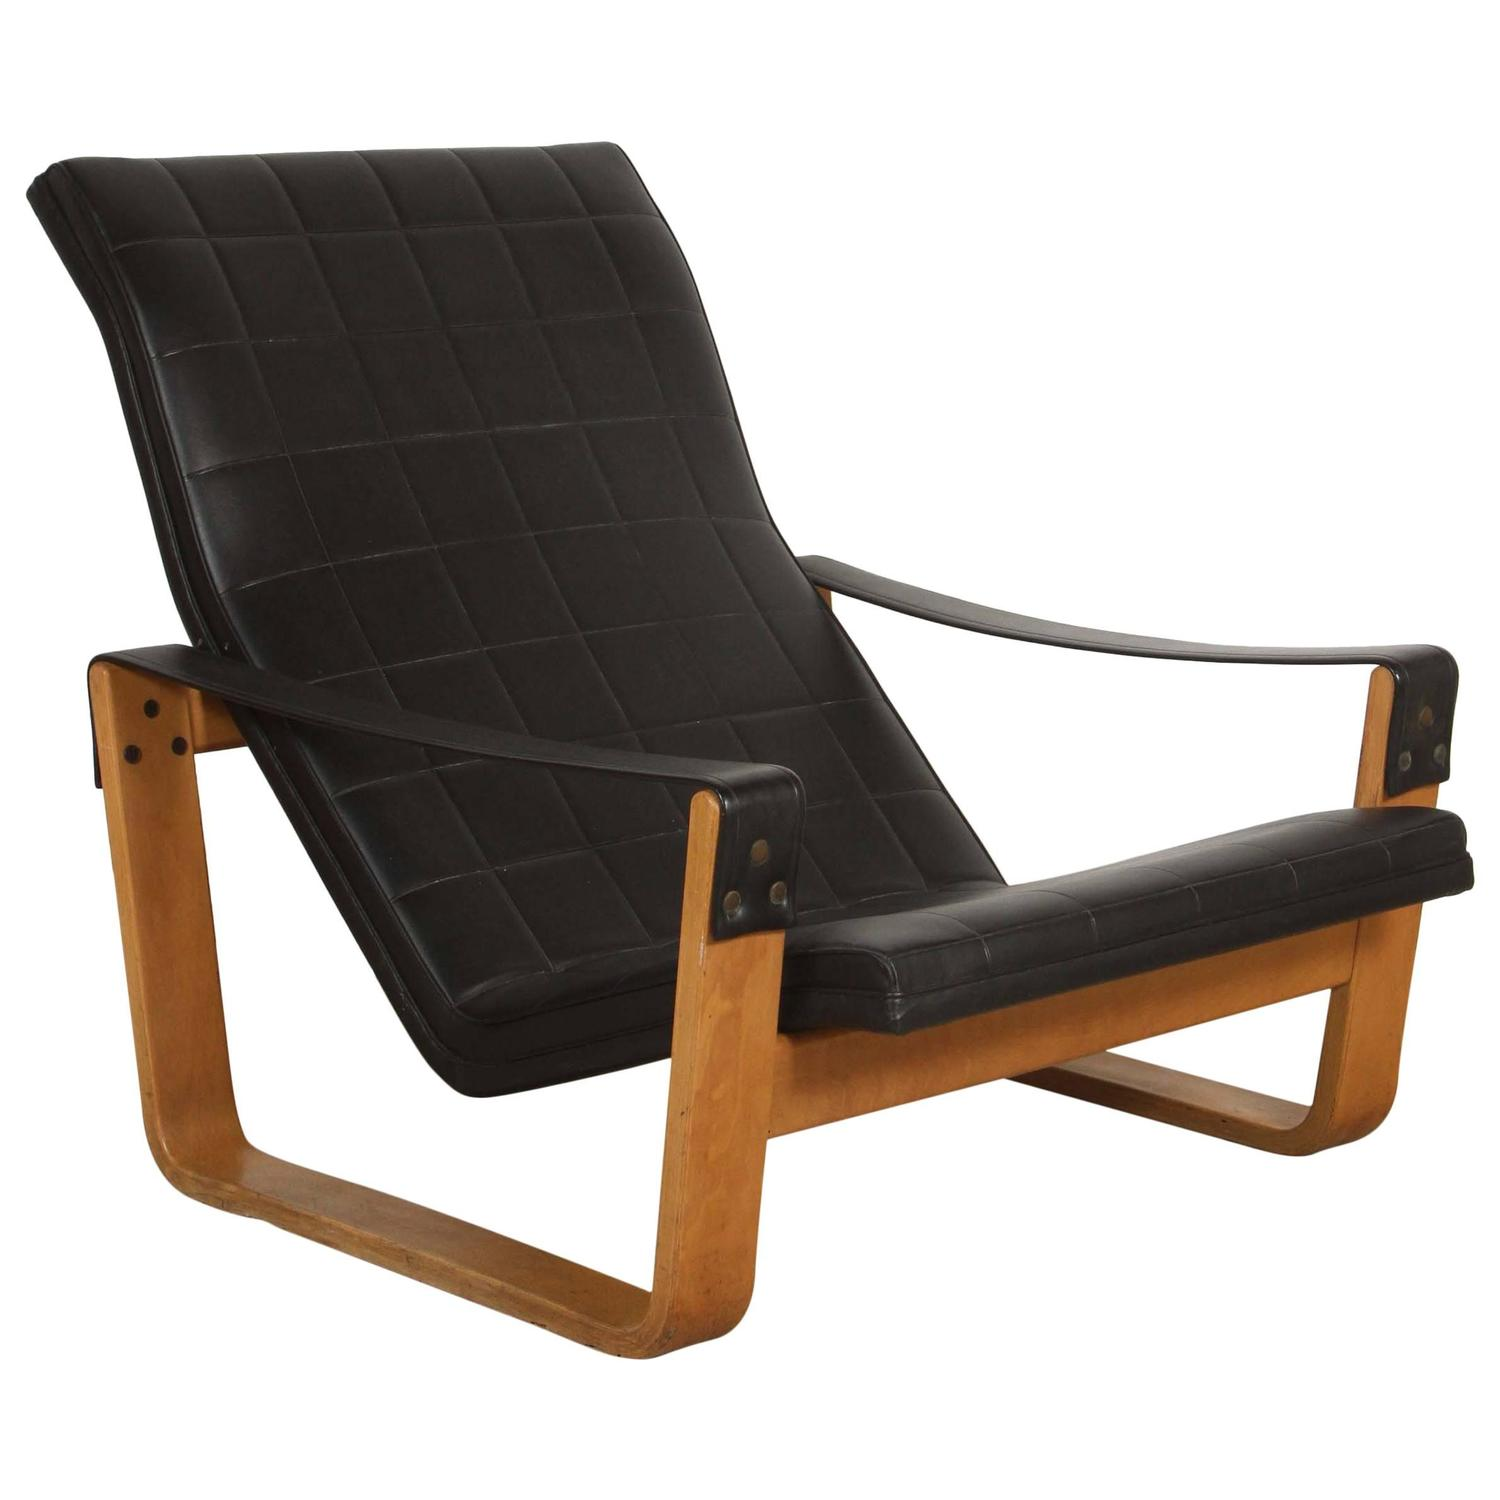 ilmari lappaleinen sessel pulkka lounge chair for asko 1967 for sale at 1stdibs. Black Bedroom Furniture Sets. Home Design Ideas